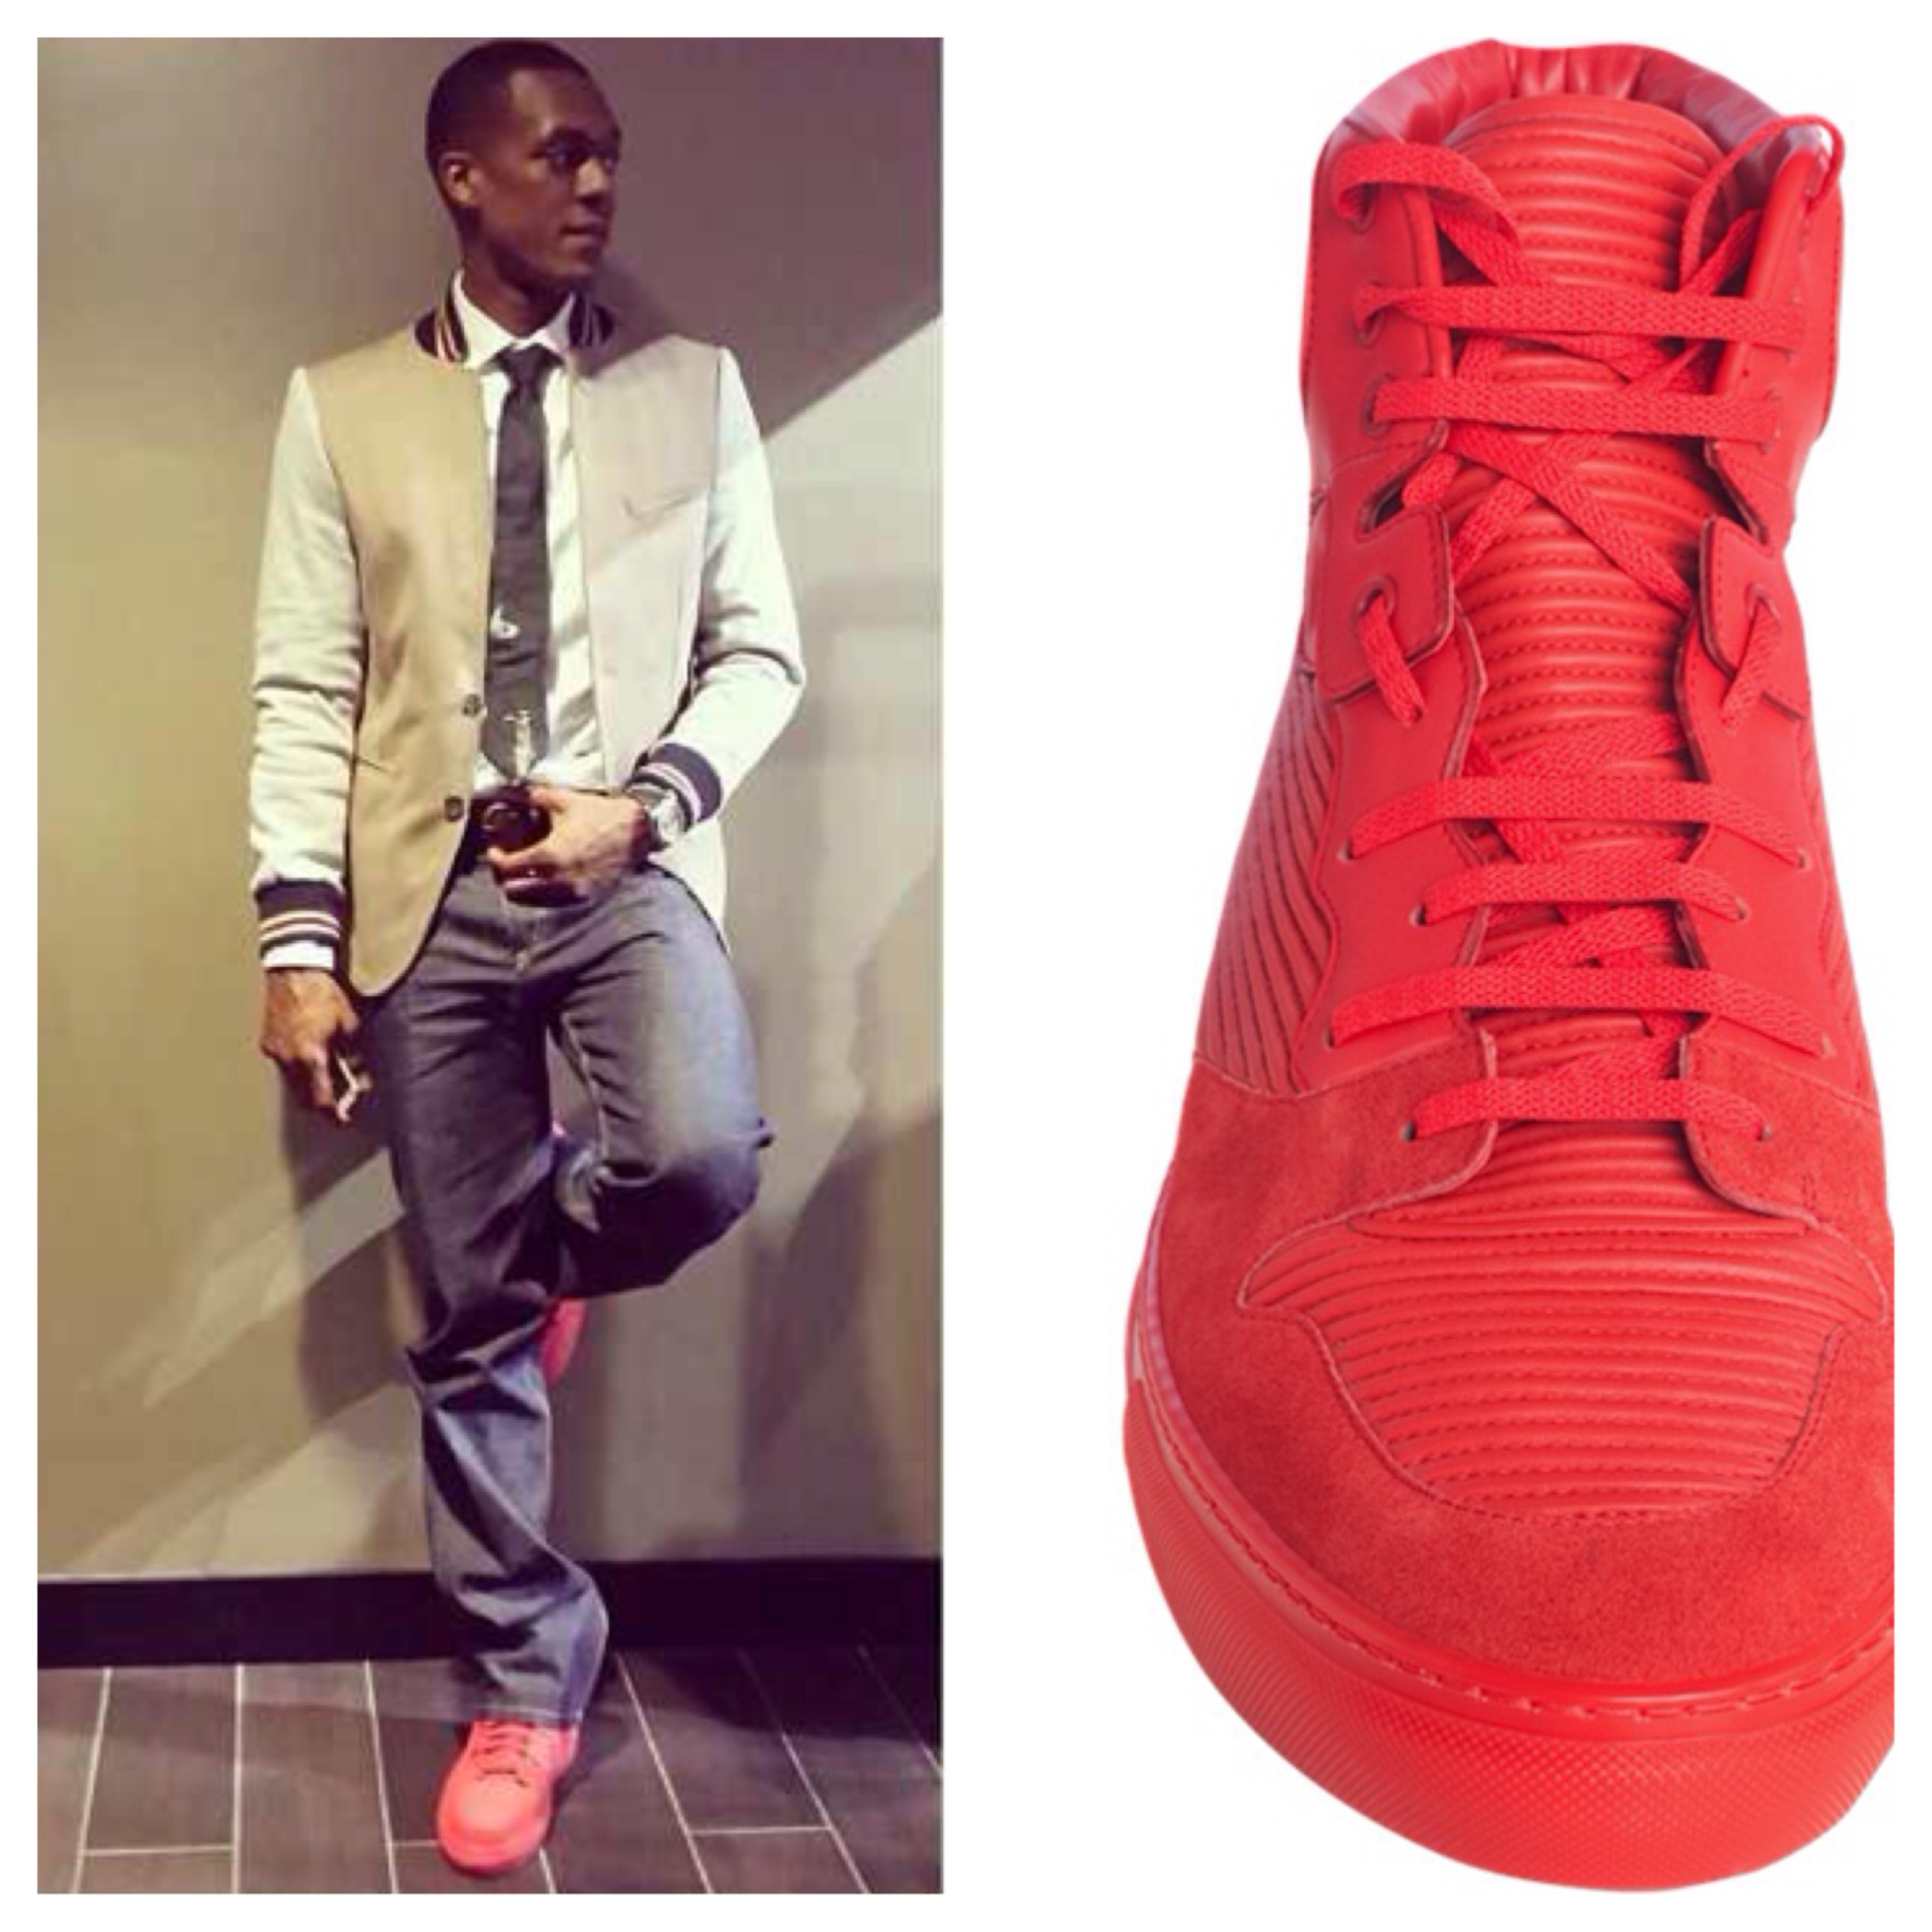 Rajon-Rondo-Instagram-red-balenciaga-sneakers-pleated-high-top-sneakers-Zara-Collegiate-jacket